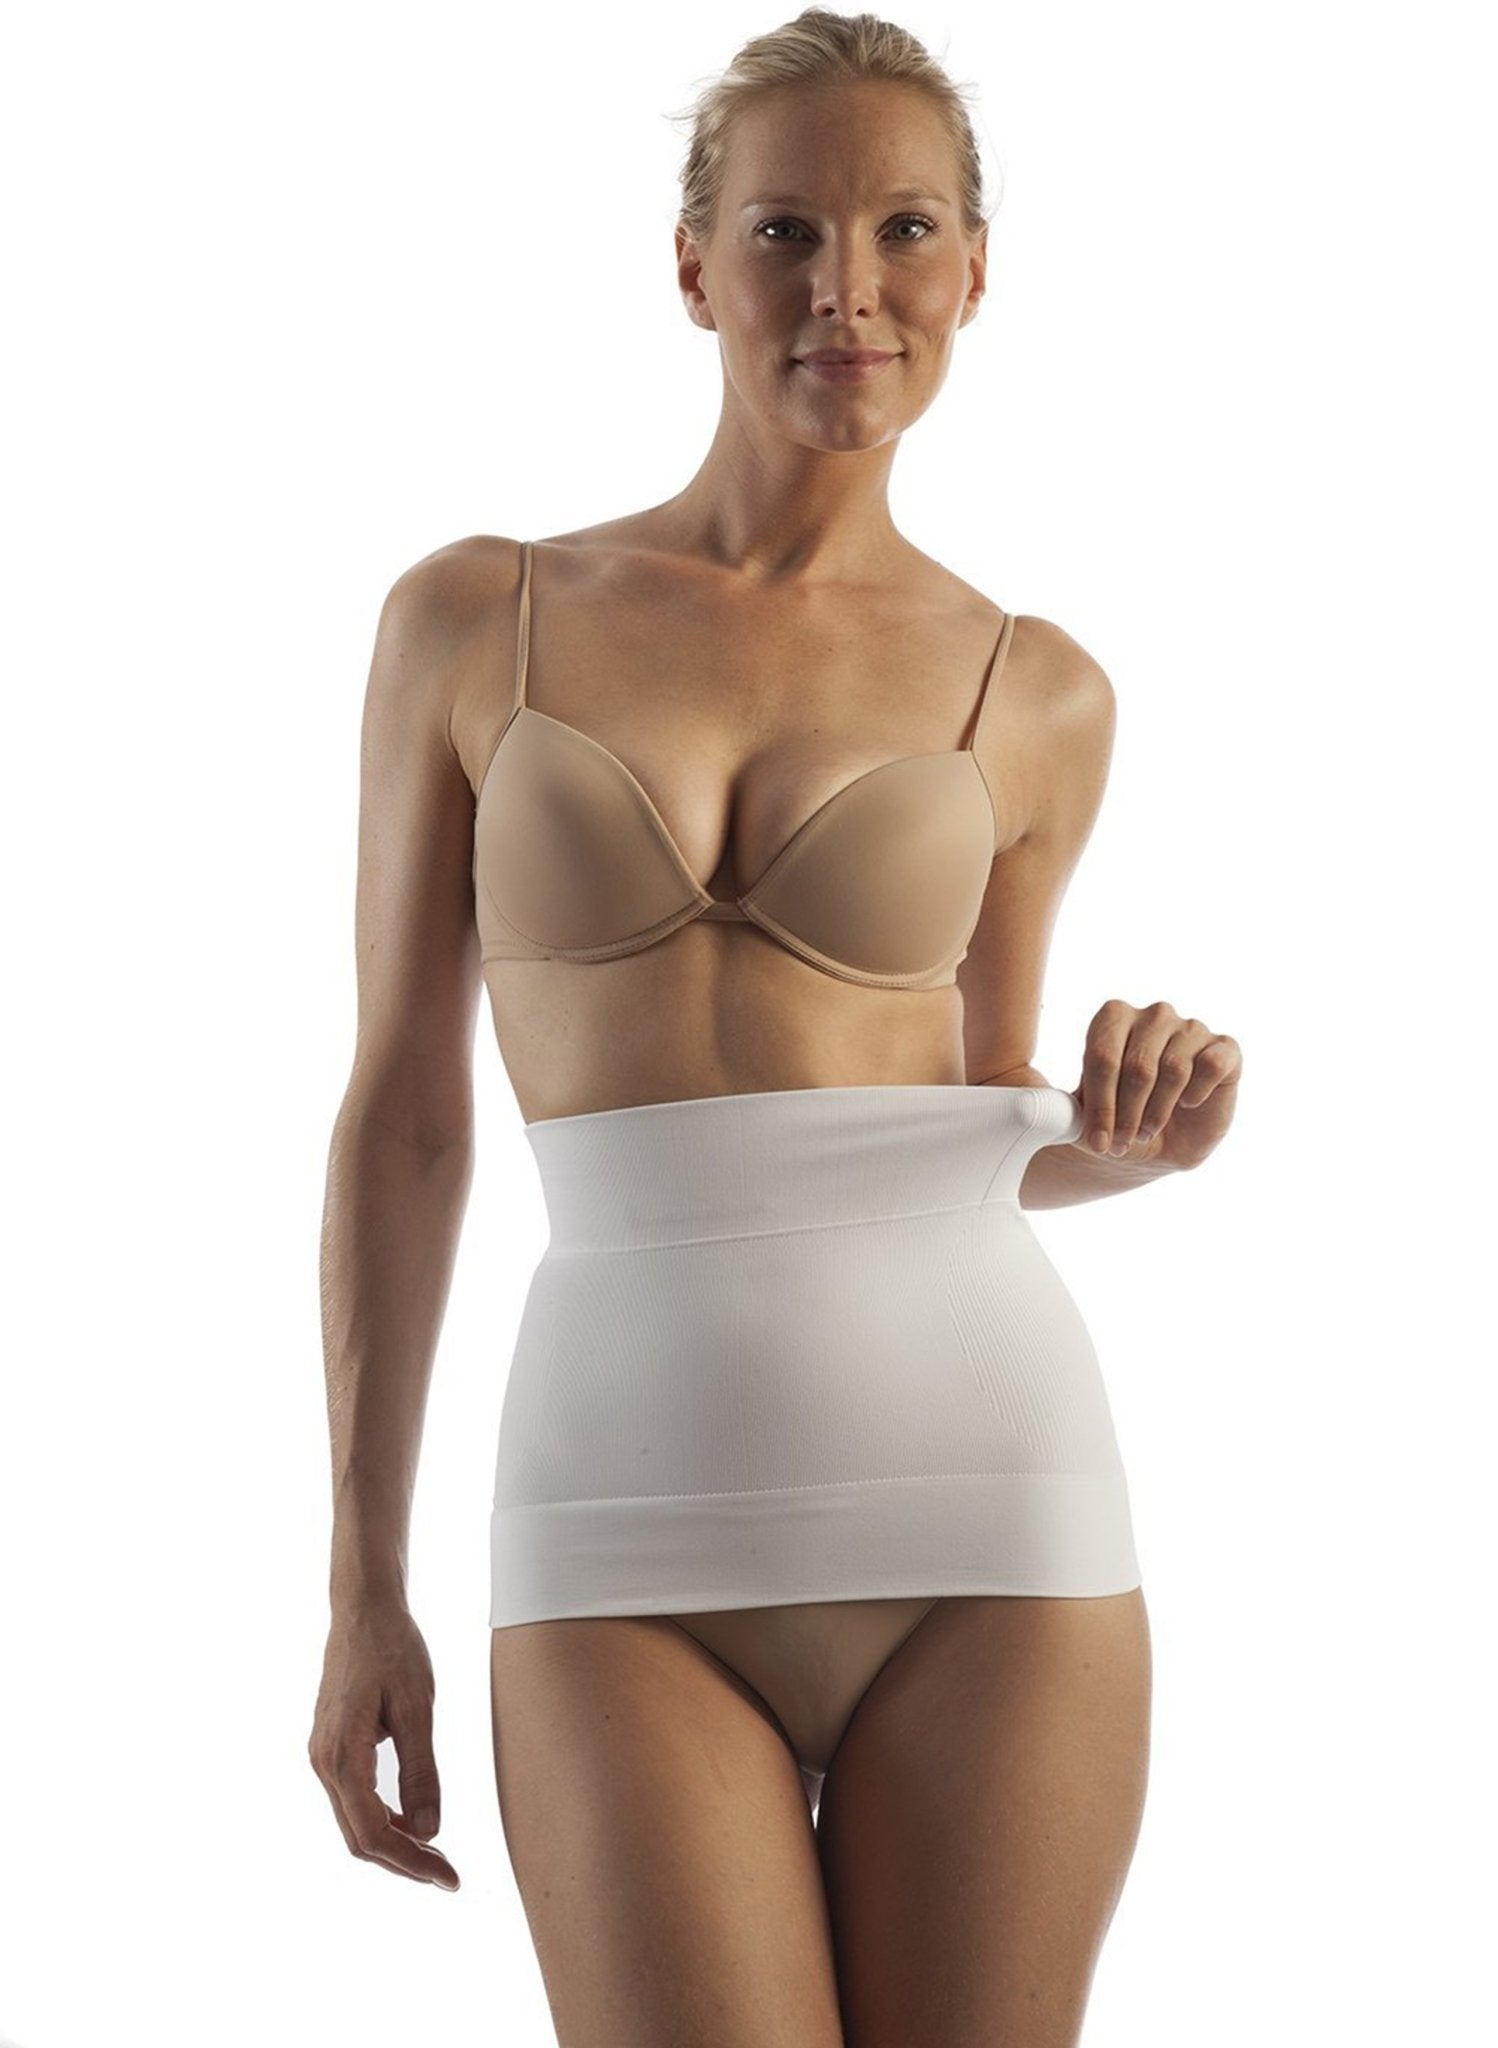 Seamless Milk-Fiber Body Shaping Abdominal Binder - Ivory - Mums and Bumps